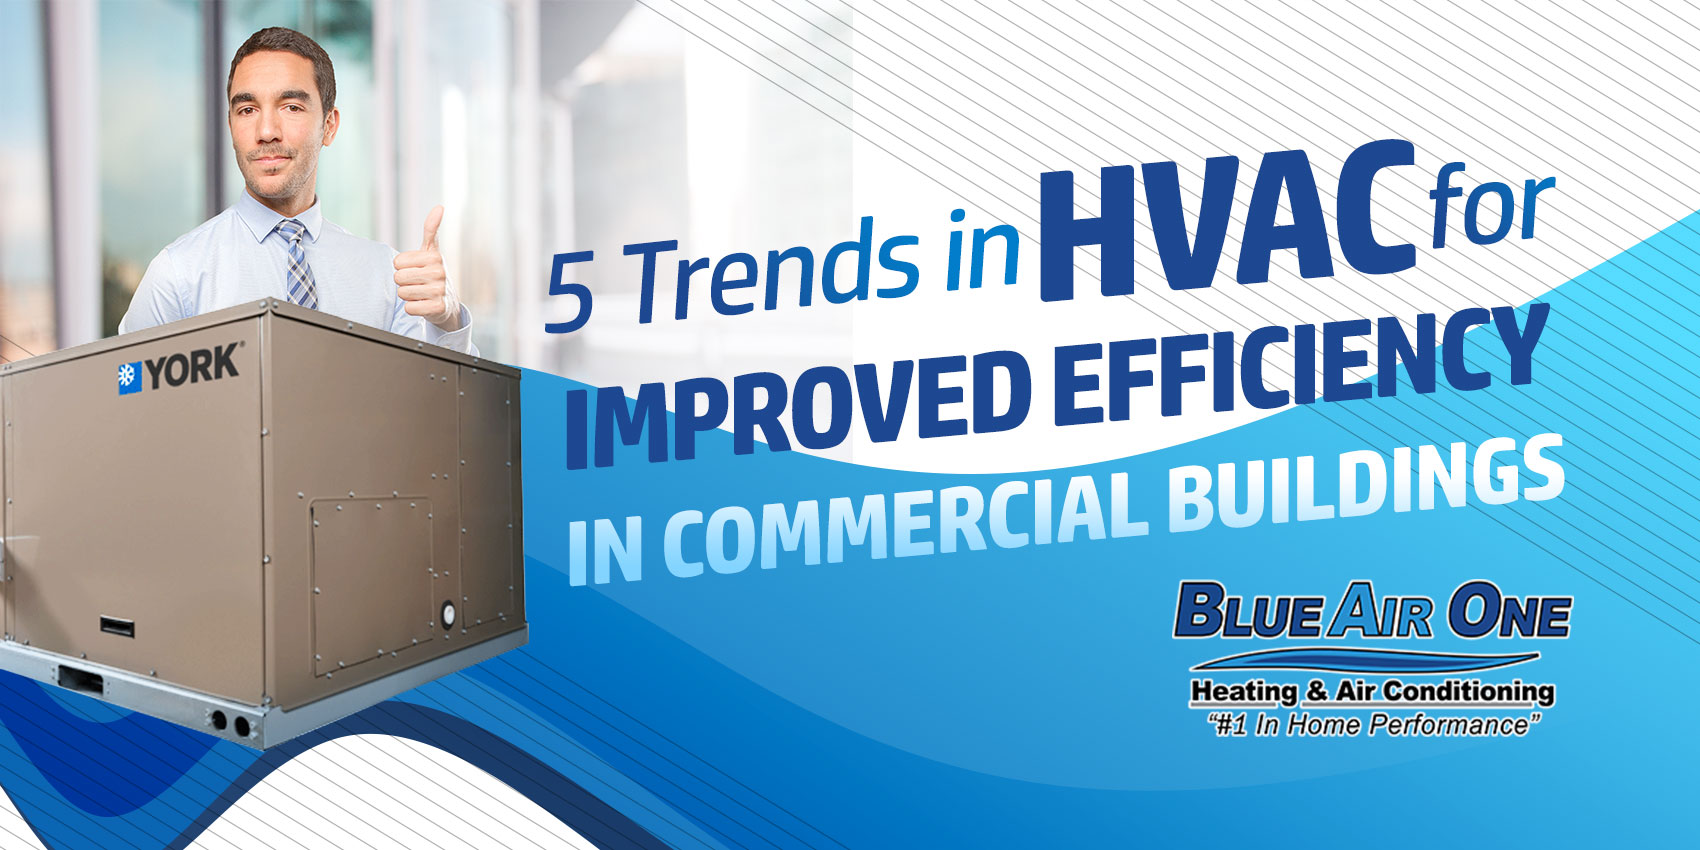 5 Trends in HVAC for Improved Efficiency in Commercial Buildings